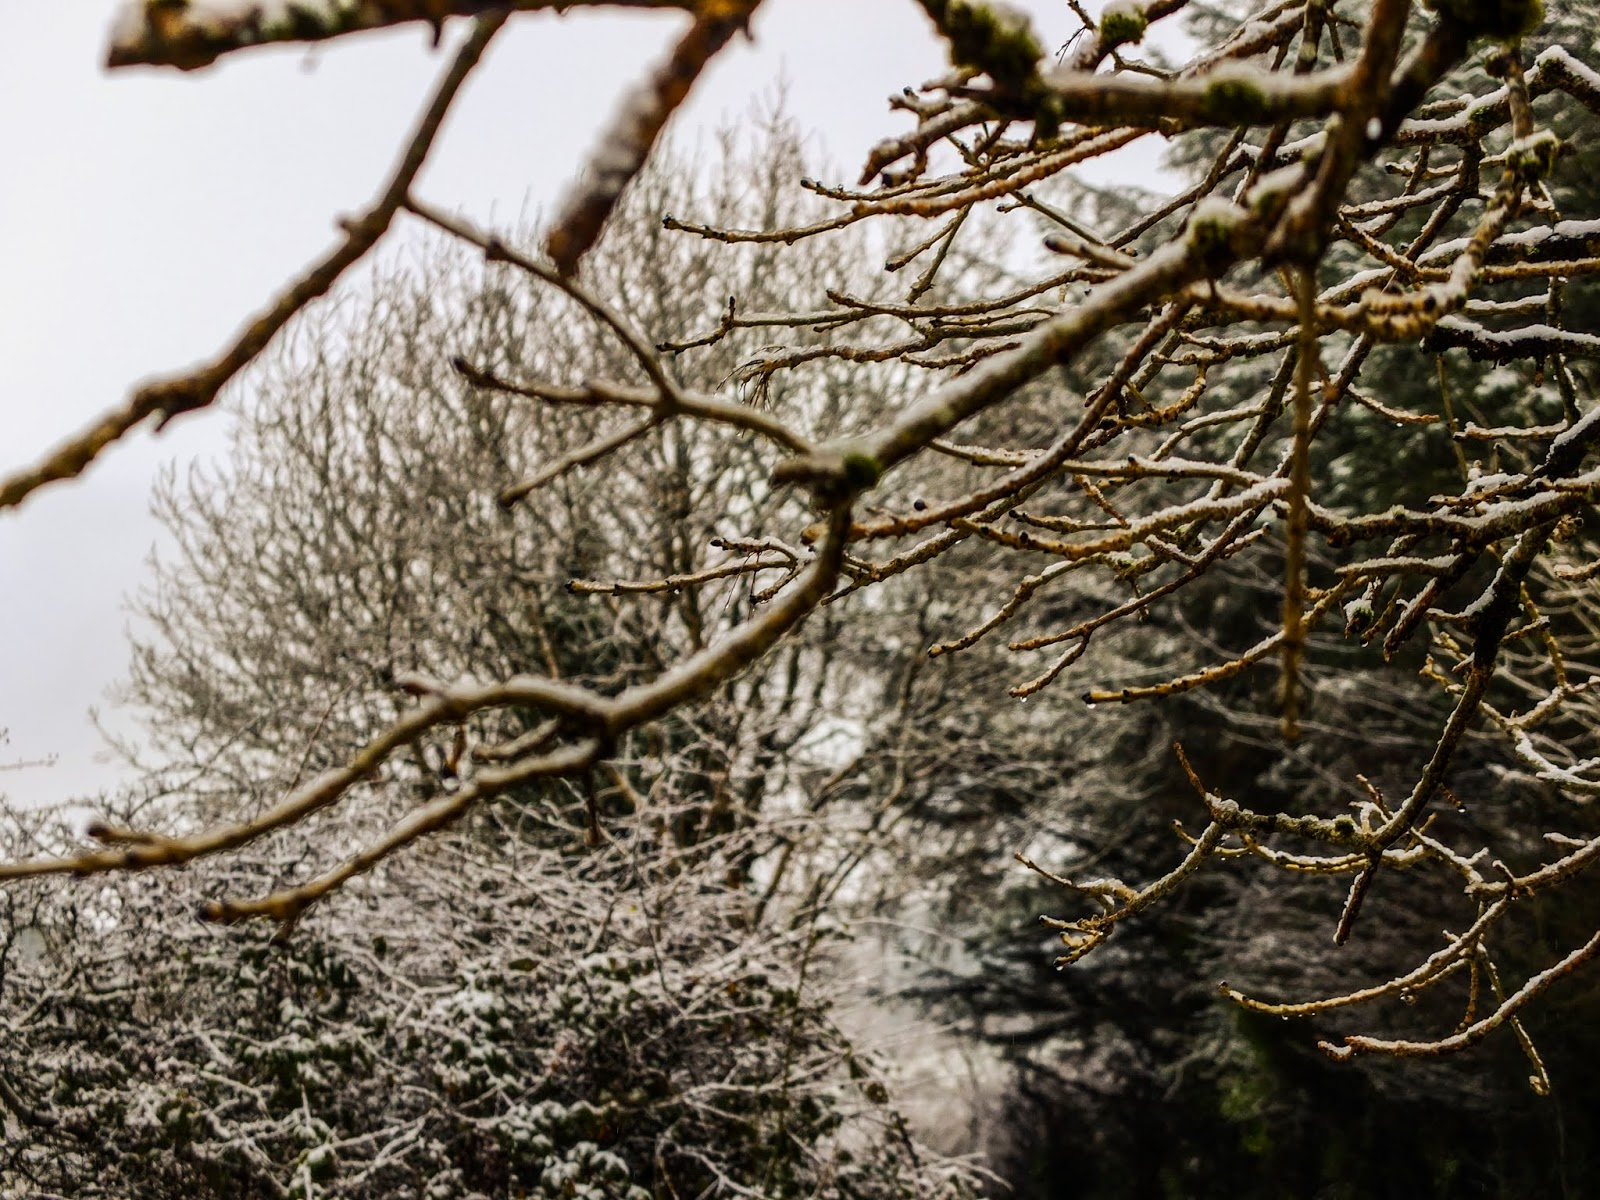 Image taken under snow covered tree branches in the Boggeragh Mountains.